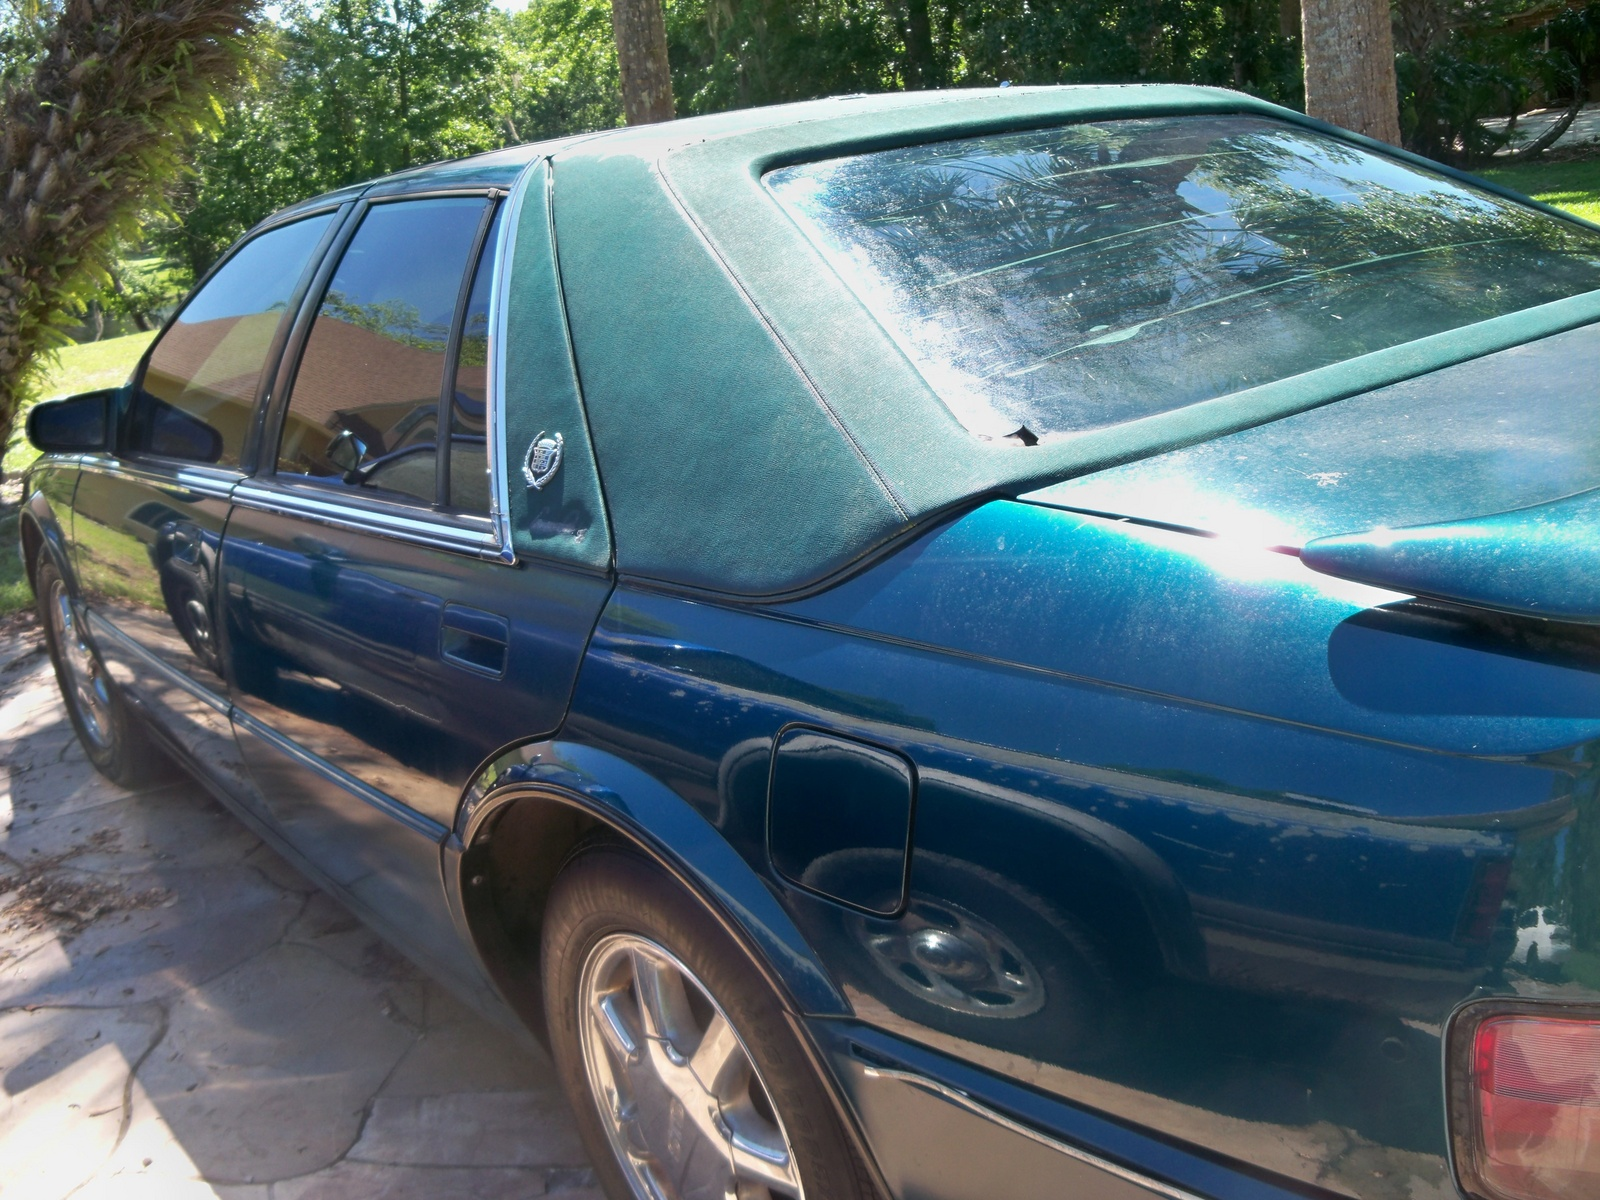 Picture of 1996 Cadillac Seville 4 Dr STS Sedan